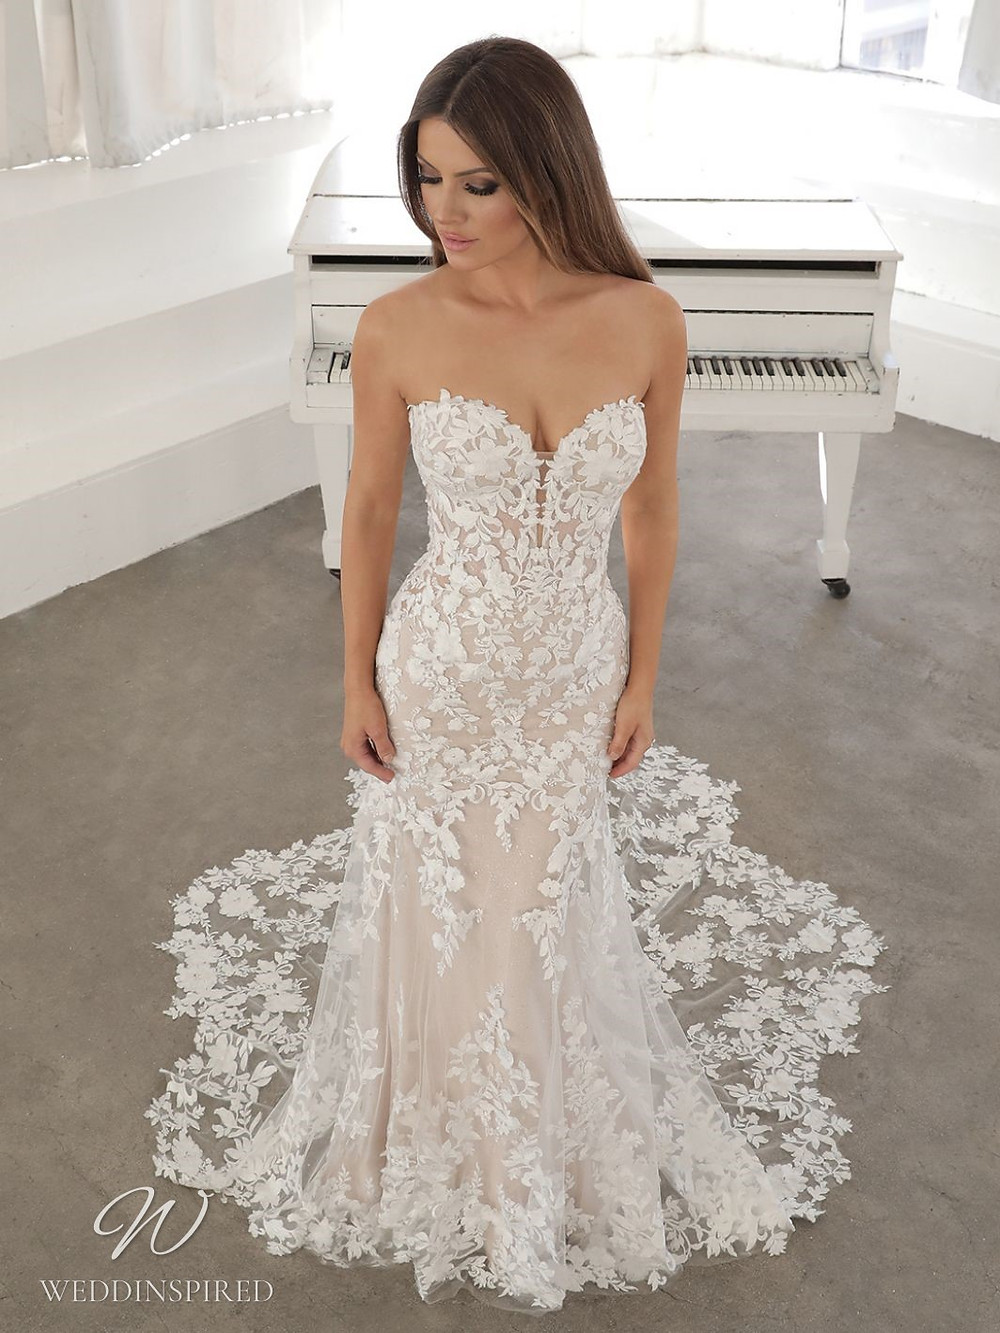 A Blue by Enzoani 2021 strapless lace mermaid wedding dress with a train